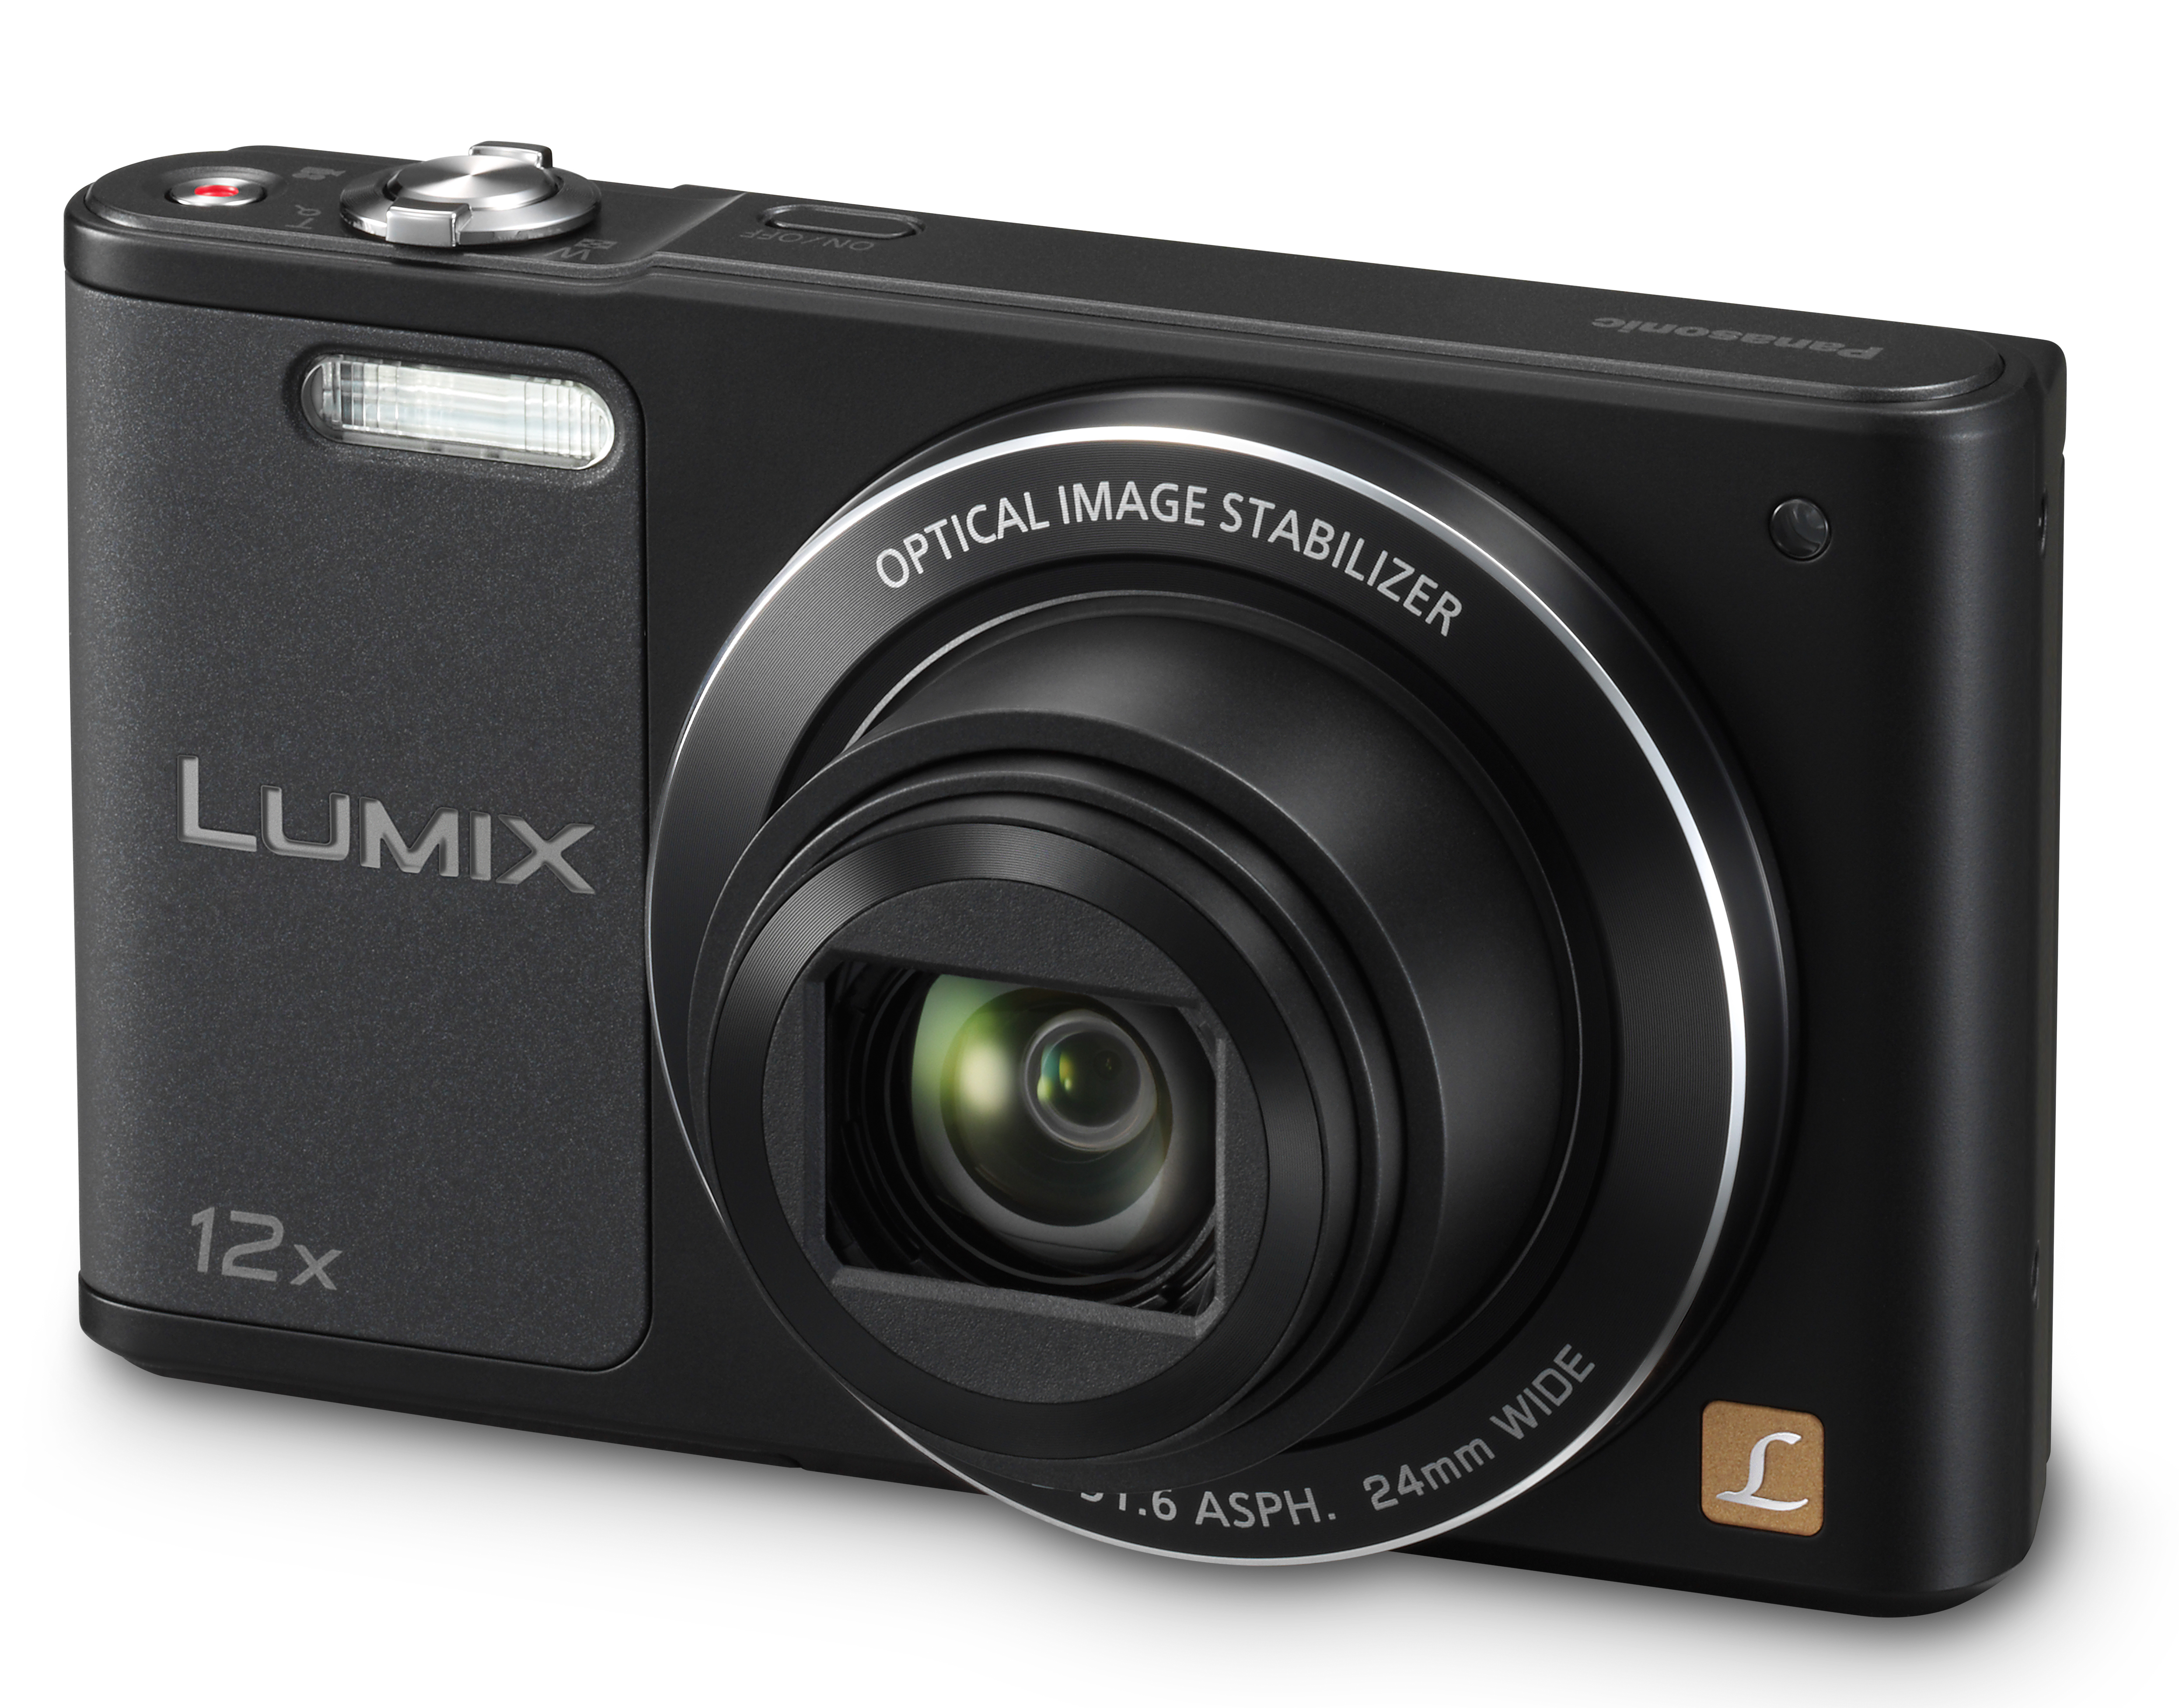 CES 2015: Post-Christmas gadget fest includes Panasonic camera, with 'slimming' mode